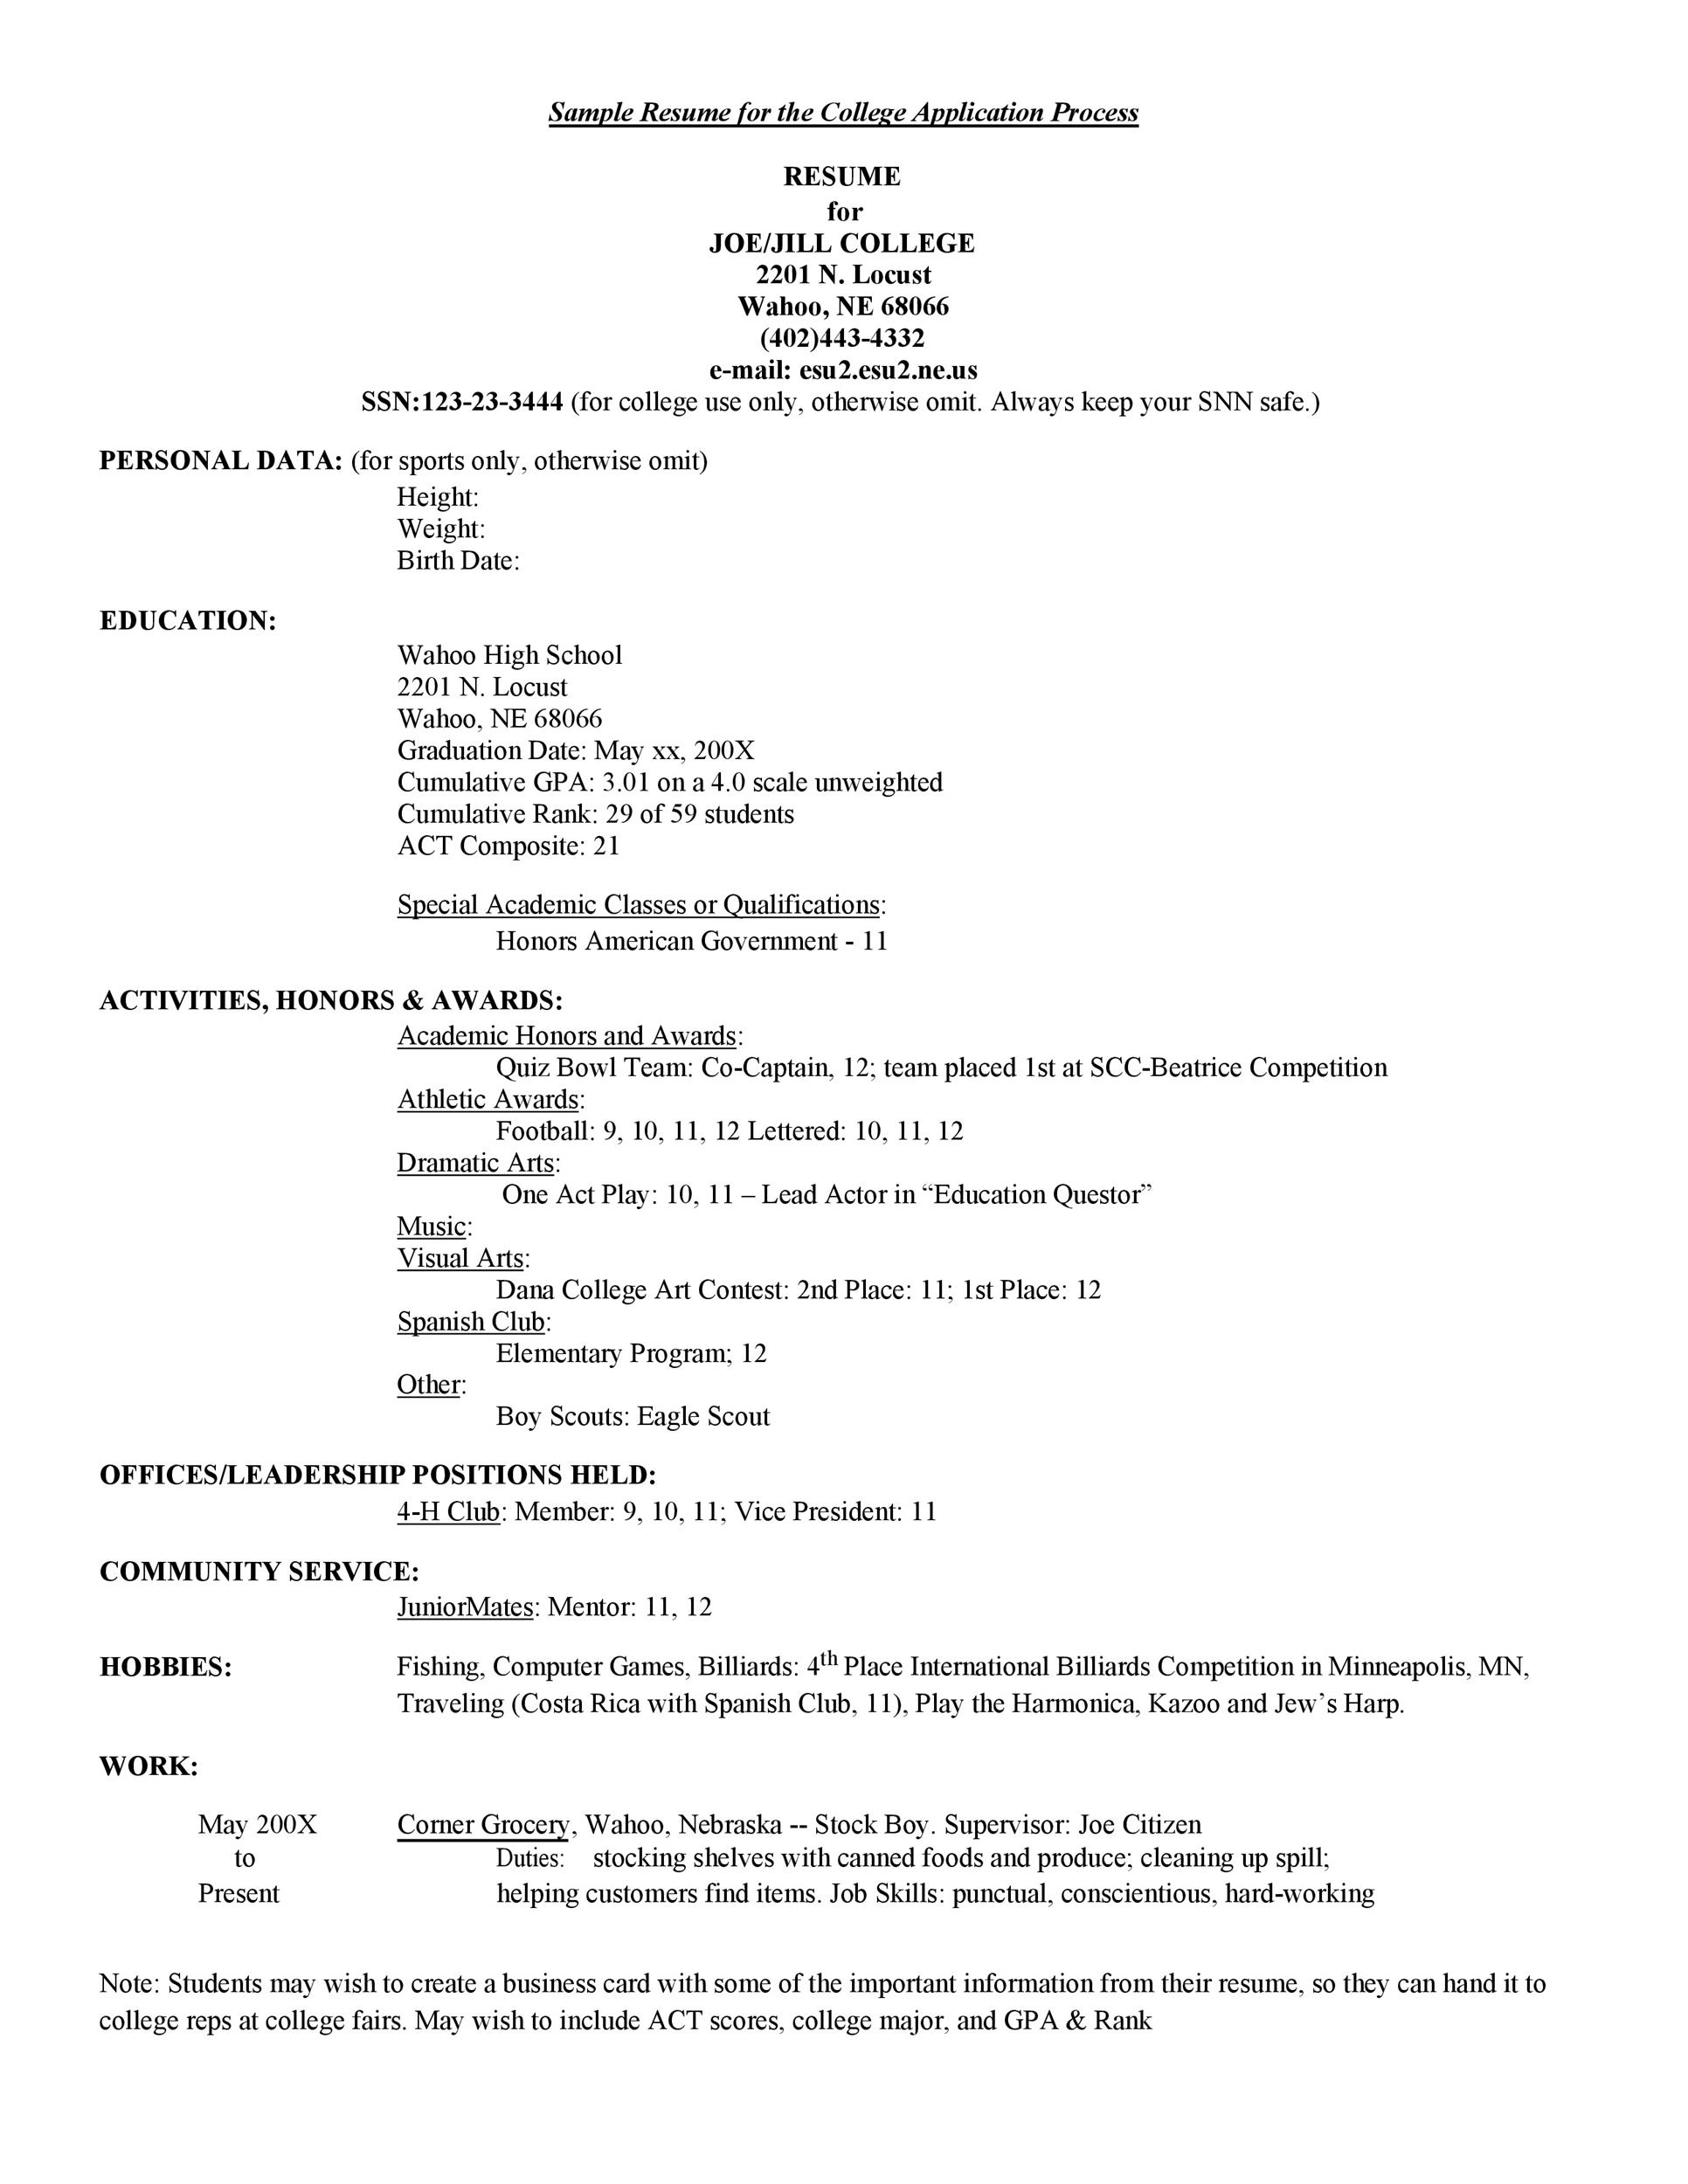 50 college student resume templates   u0026 format   u1405 template lab